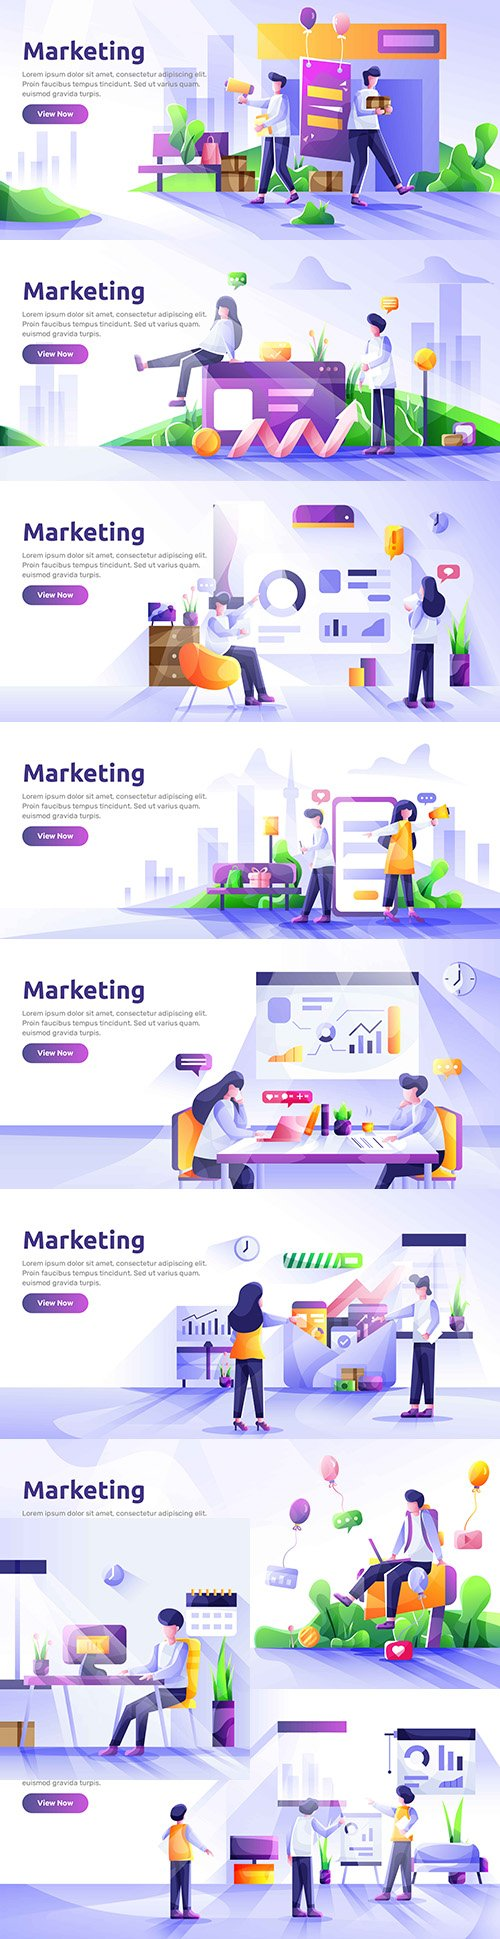 Social media marketing template landing page modern illustration